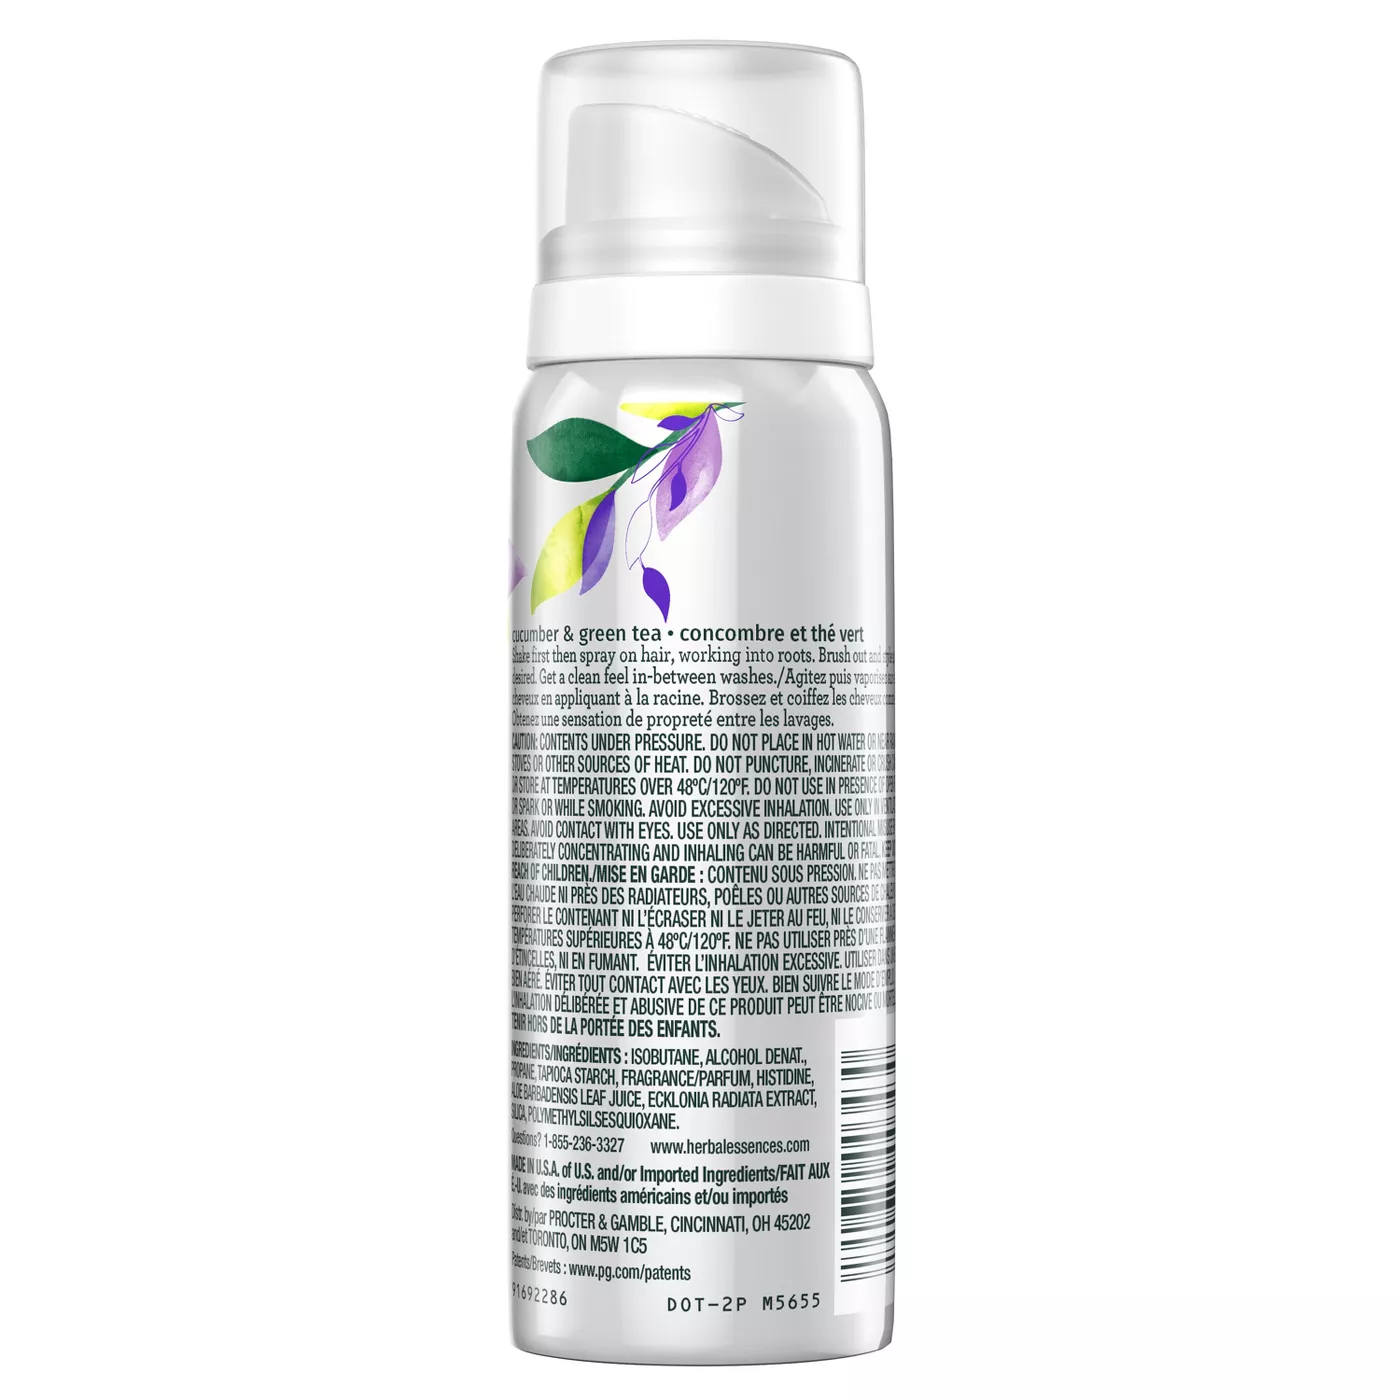 Bio_Renew_Revitalize_Cucumber___Green_Tea_Dry_Shampoo_From_Herbal_Essences_5.png